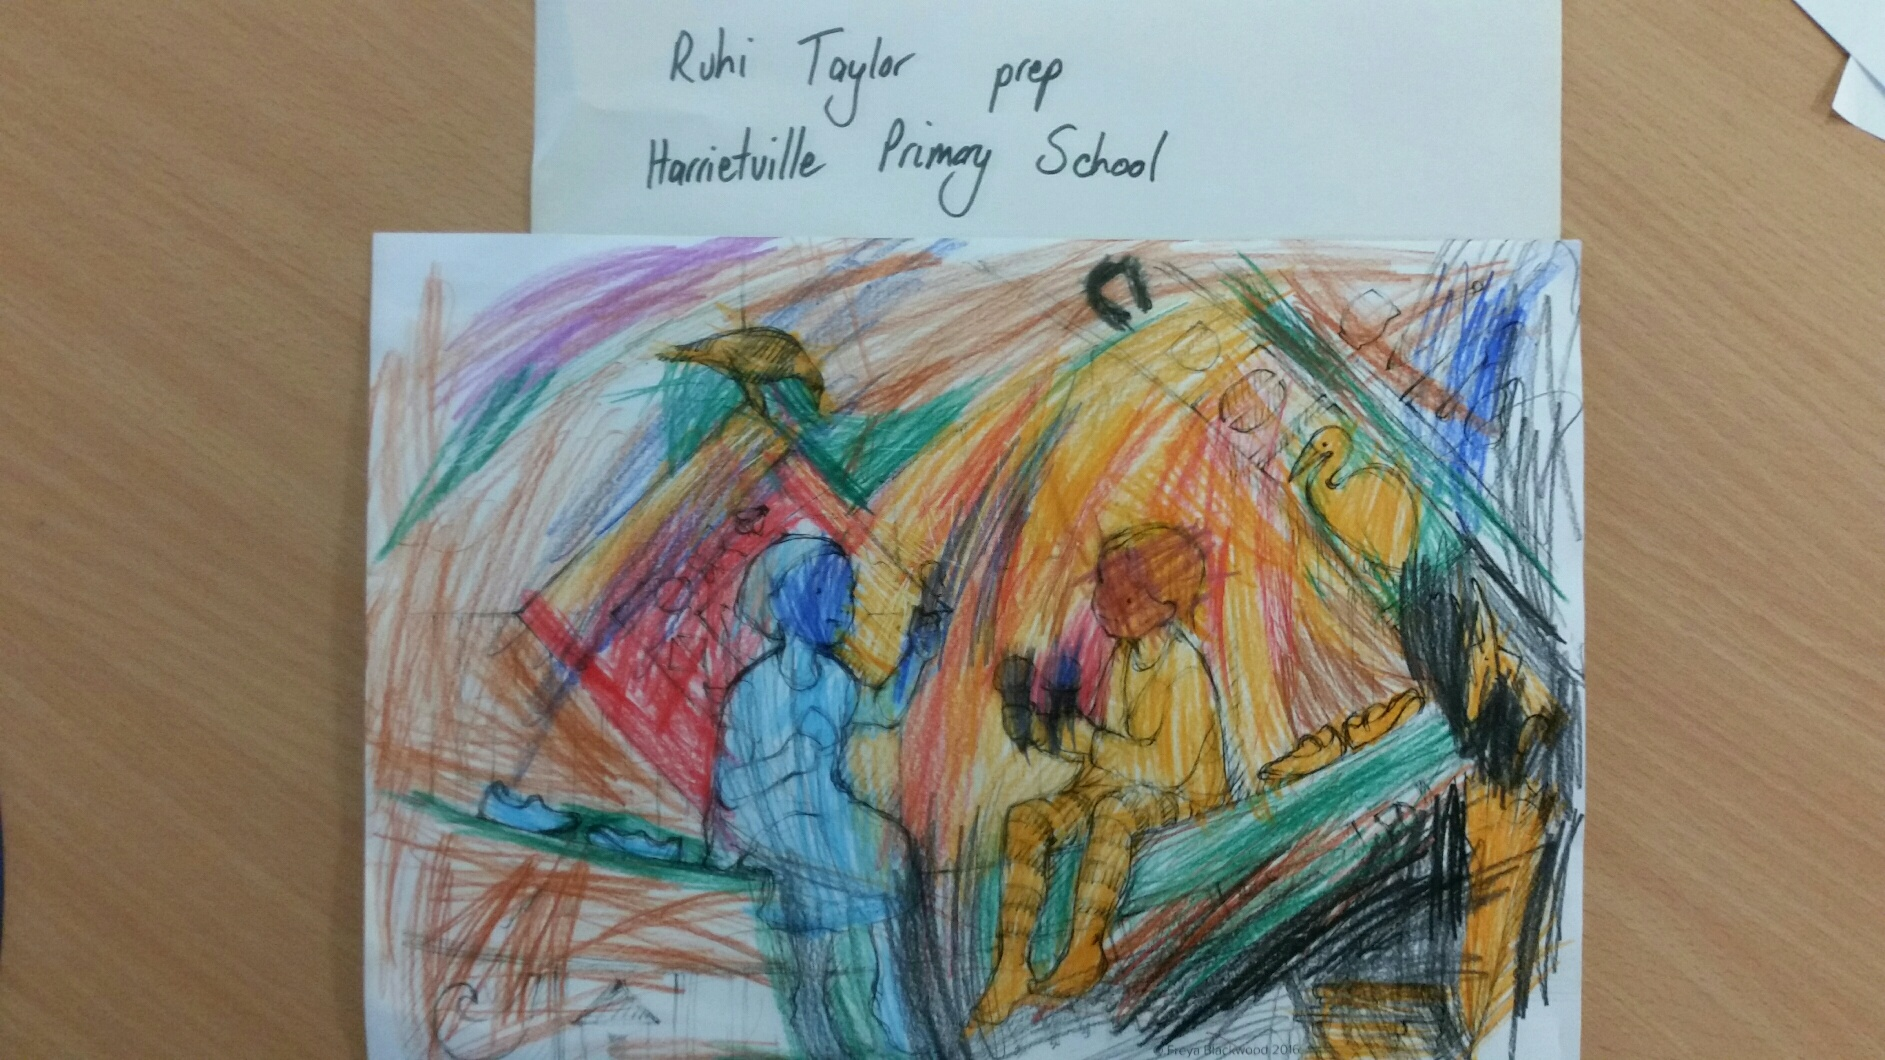 Ruhi T, Prep, Harrietville Primary School, VIC